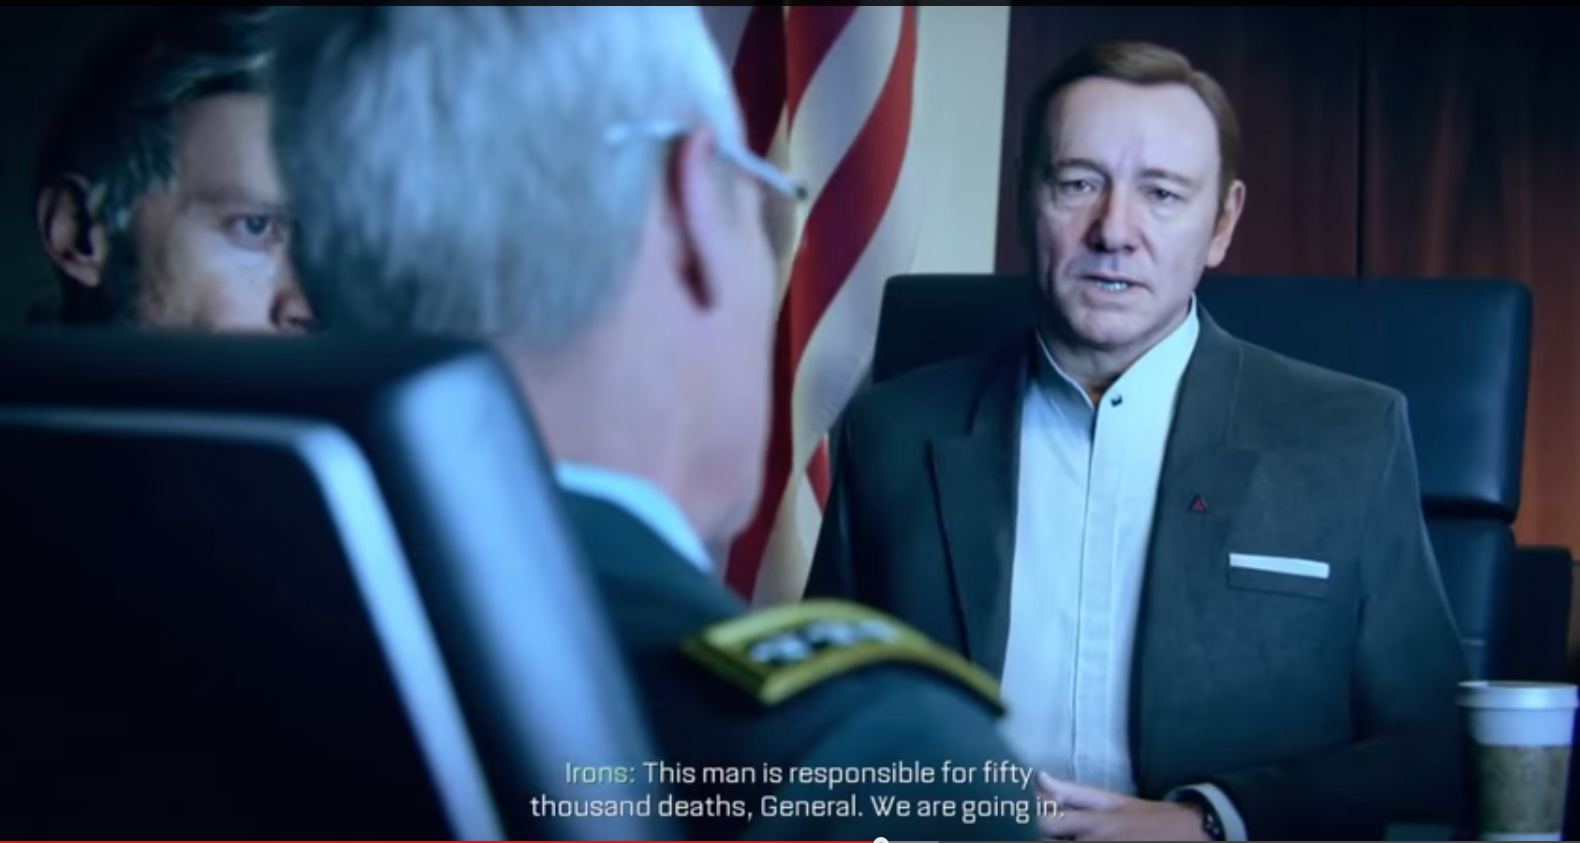 Still from Part 3 of my Let's Play, with Kevin Spacey as Irons preparing to violate another country's sovereignty.